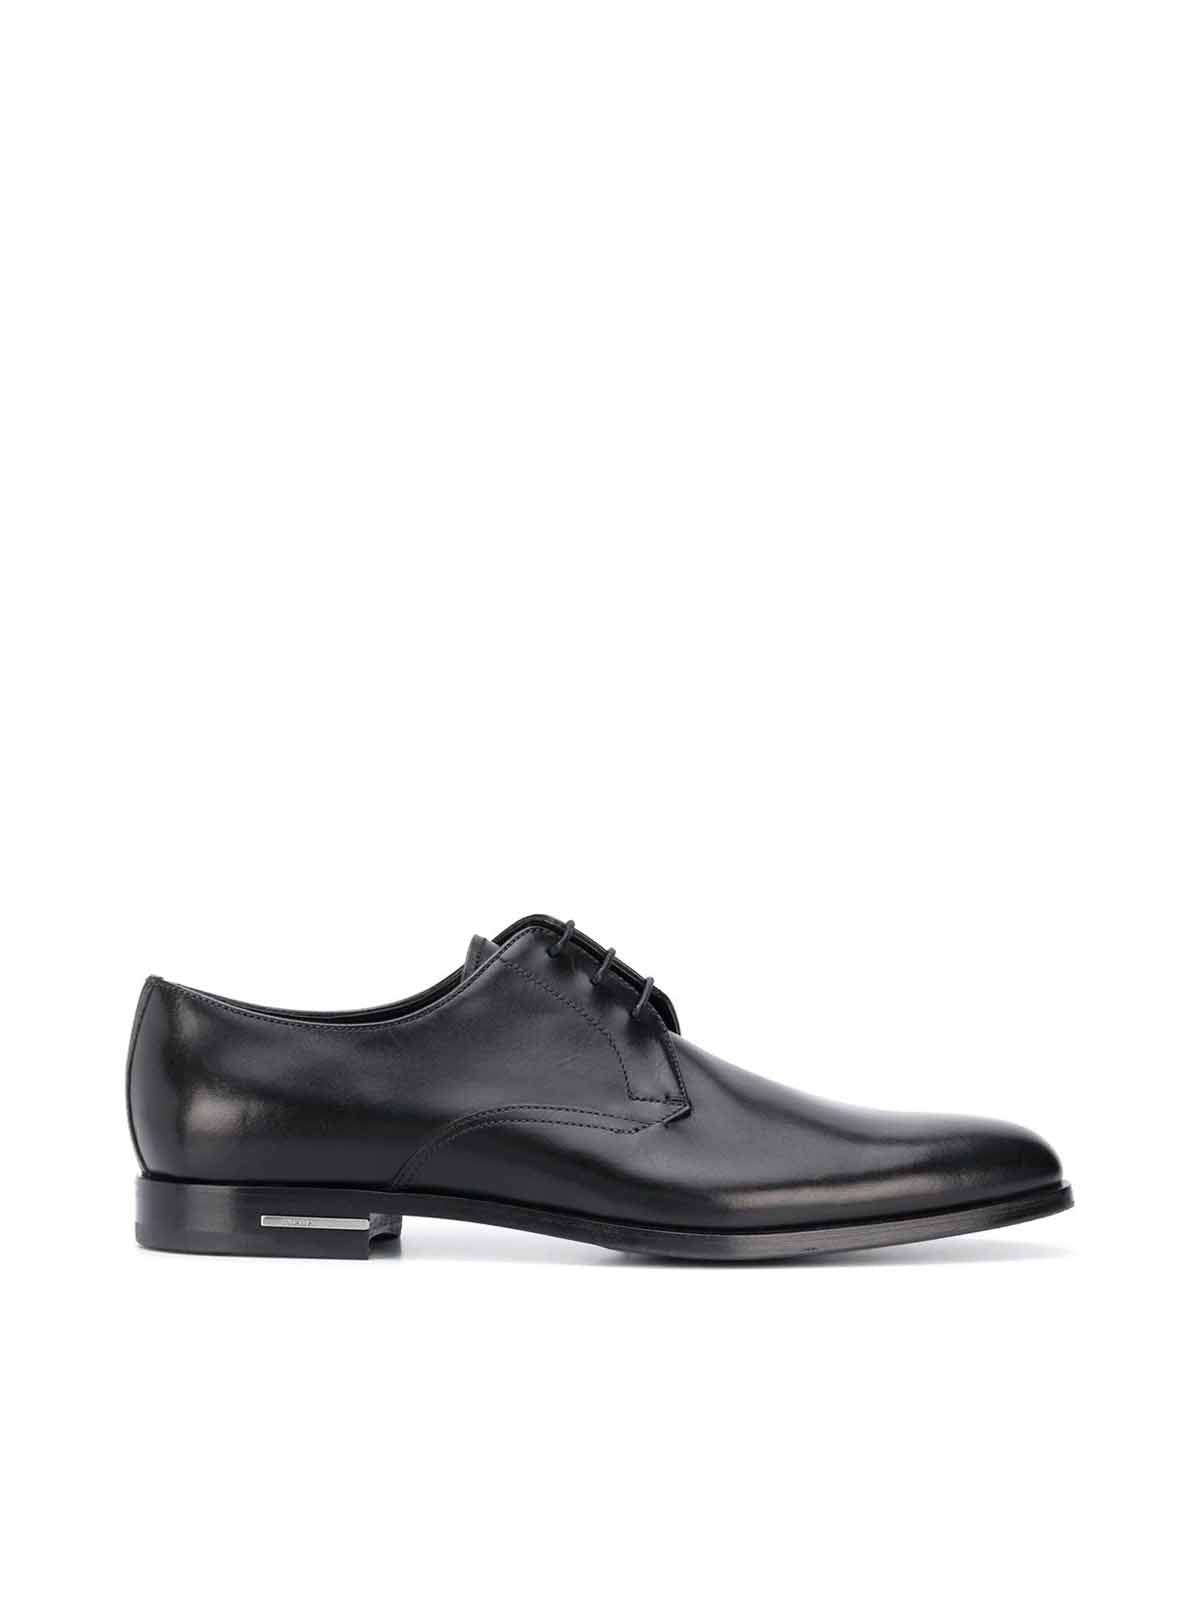 PRADA PLAQUE DERBY SHOES